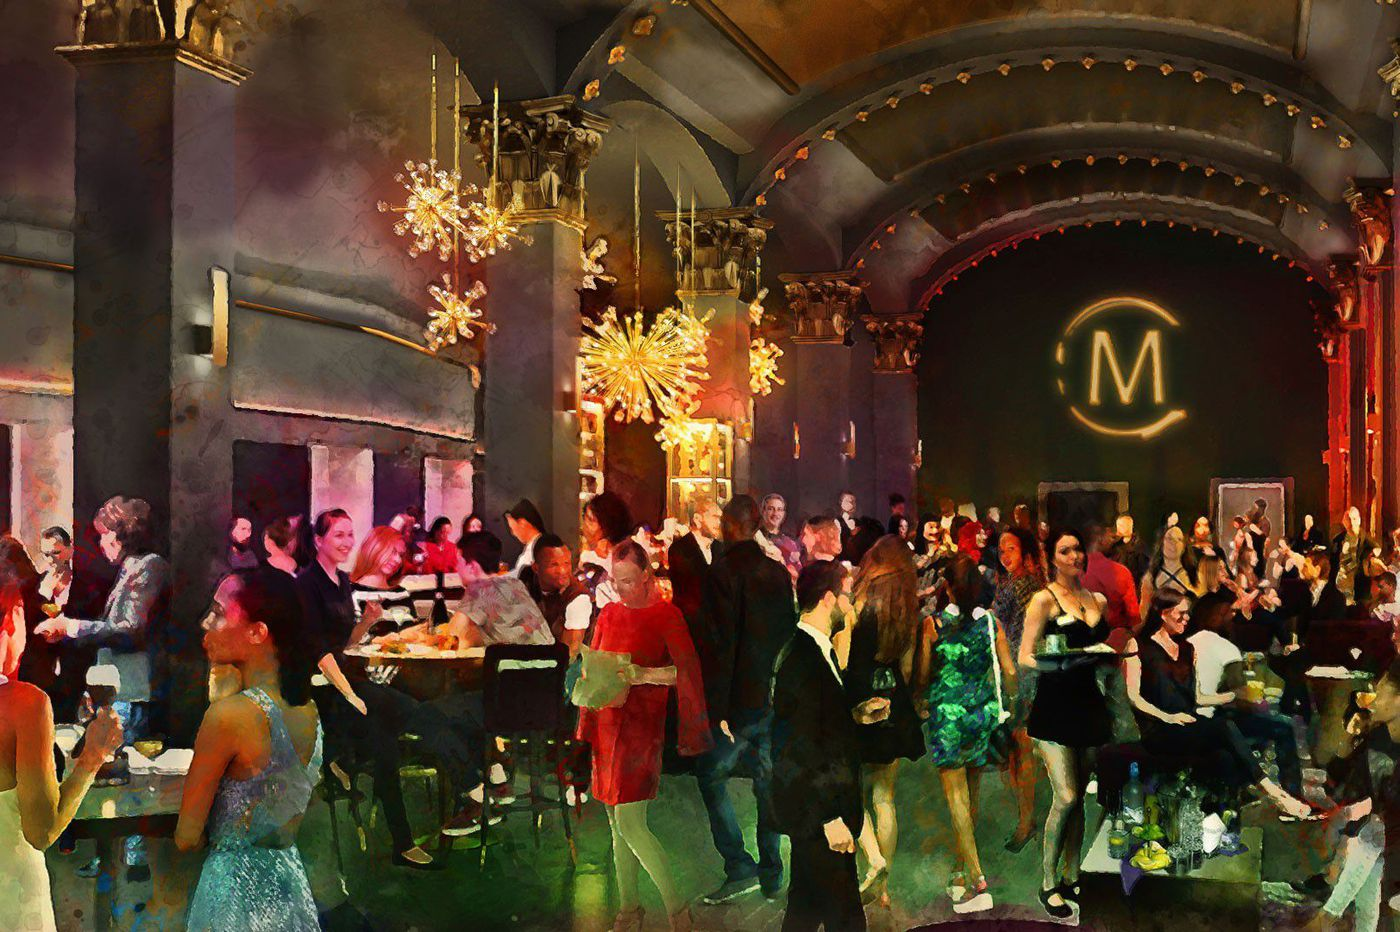 The Met Philadelphia Grande Salle: Here's what to expect at the new 'upscale lounge' opening at the North Broad venue